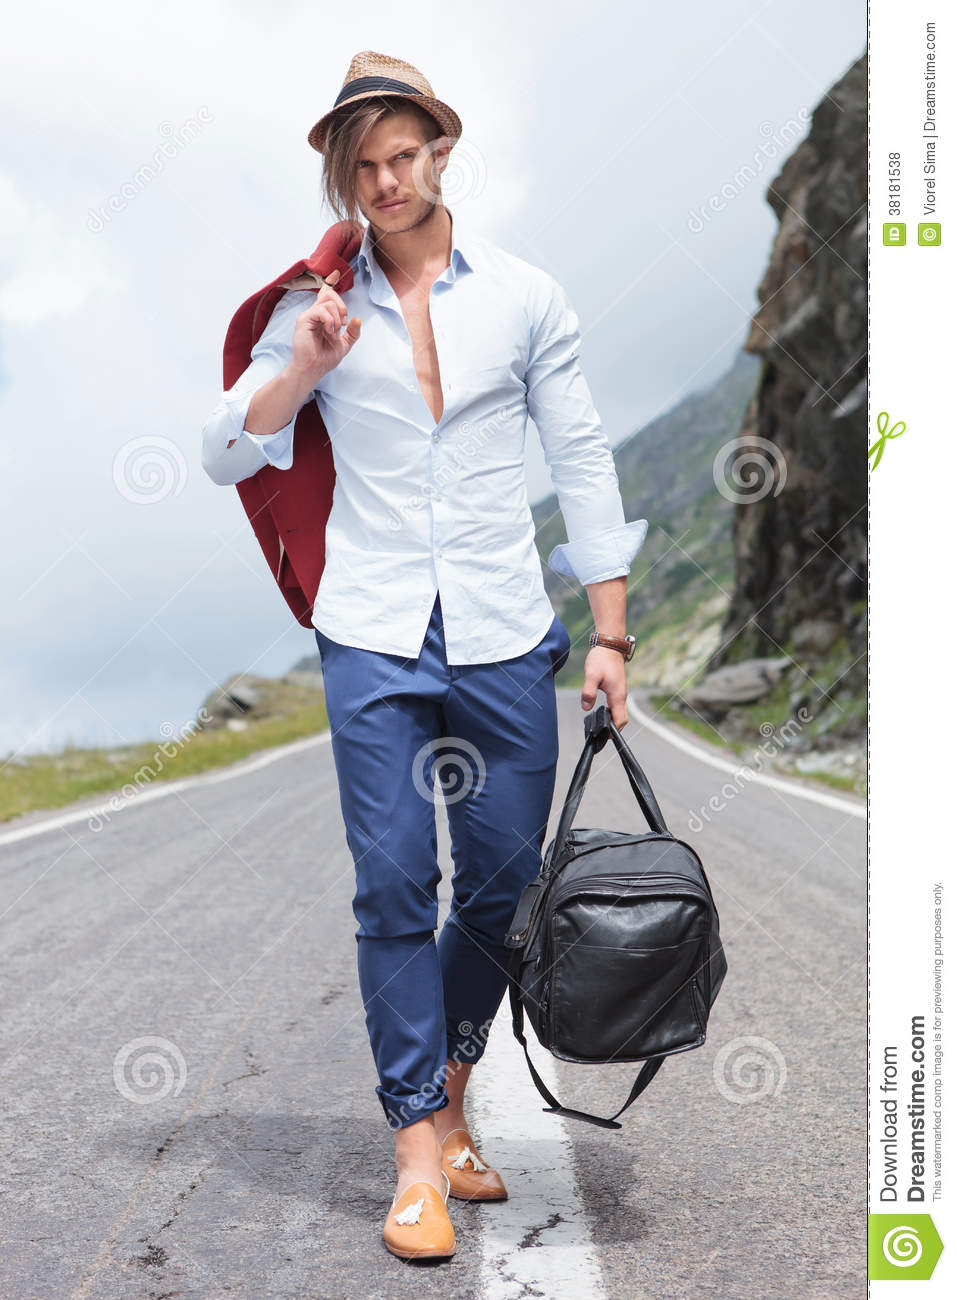 Young Man Walking With Bag On The Road Royalty Free Stock Photos ...